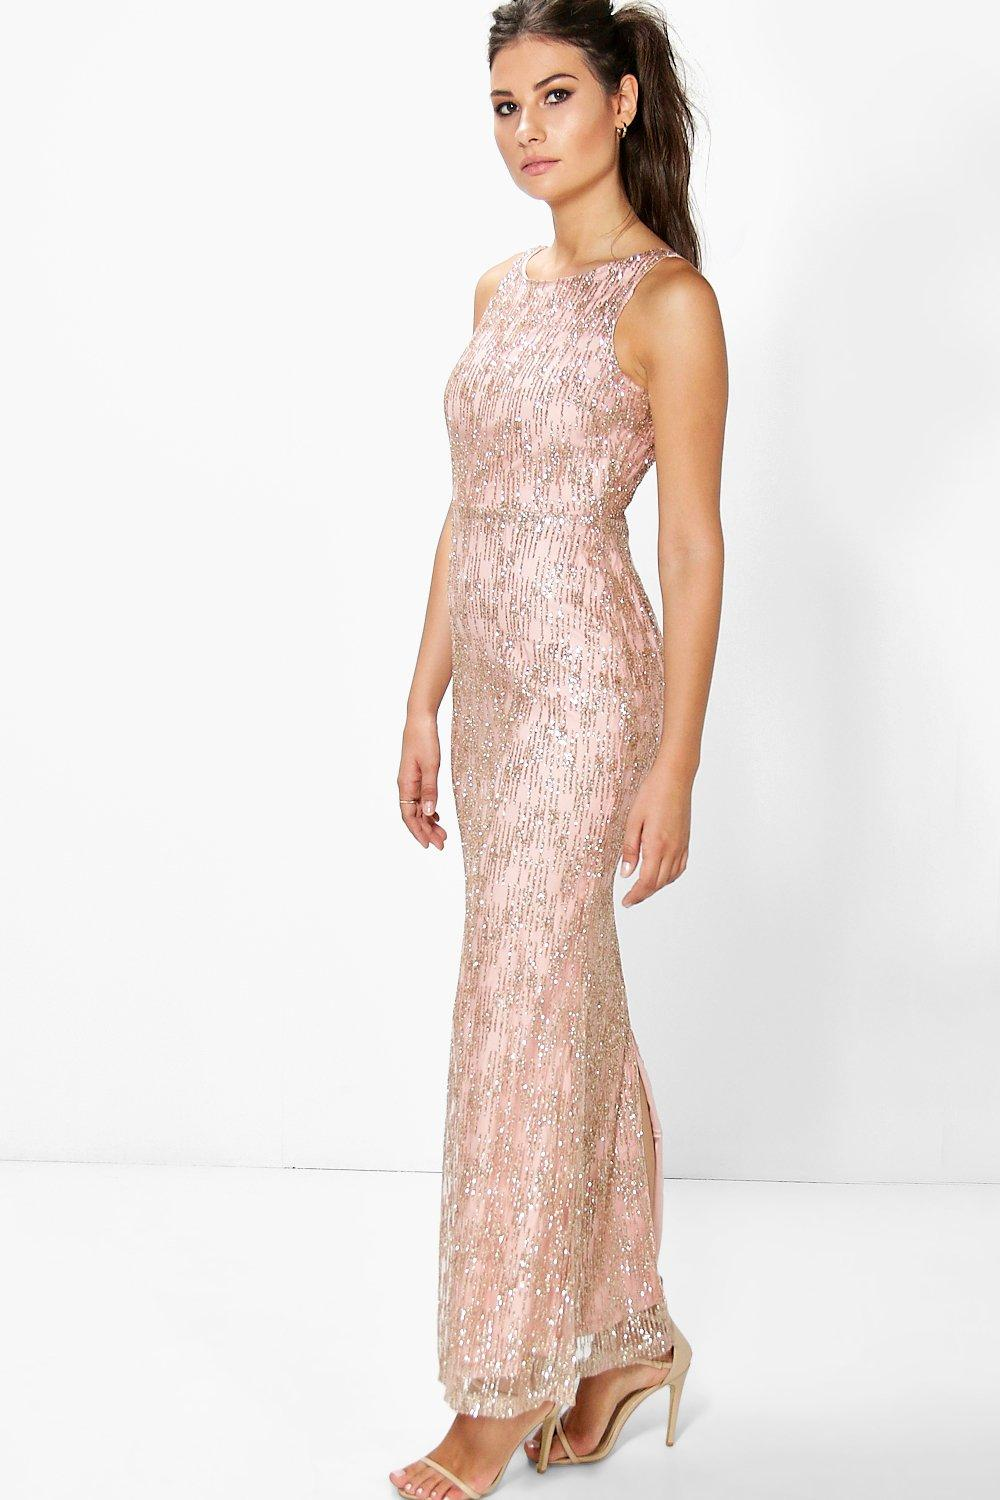 Boutique Cher All Over Embellished Maxi Dress